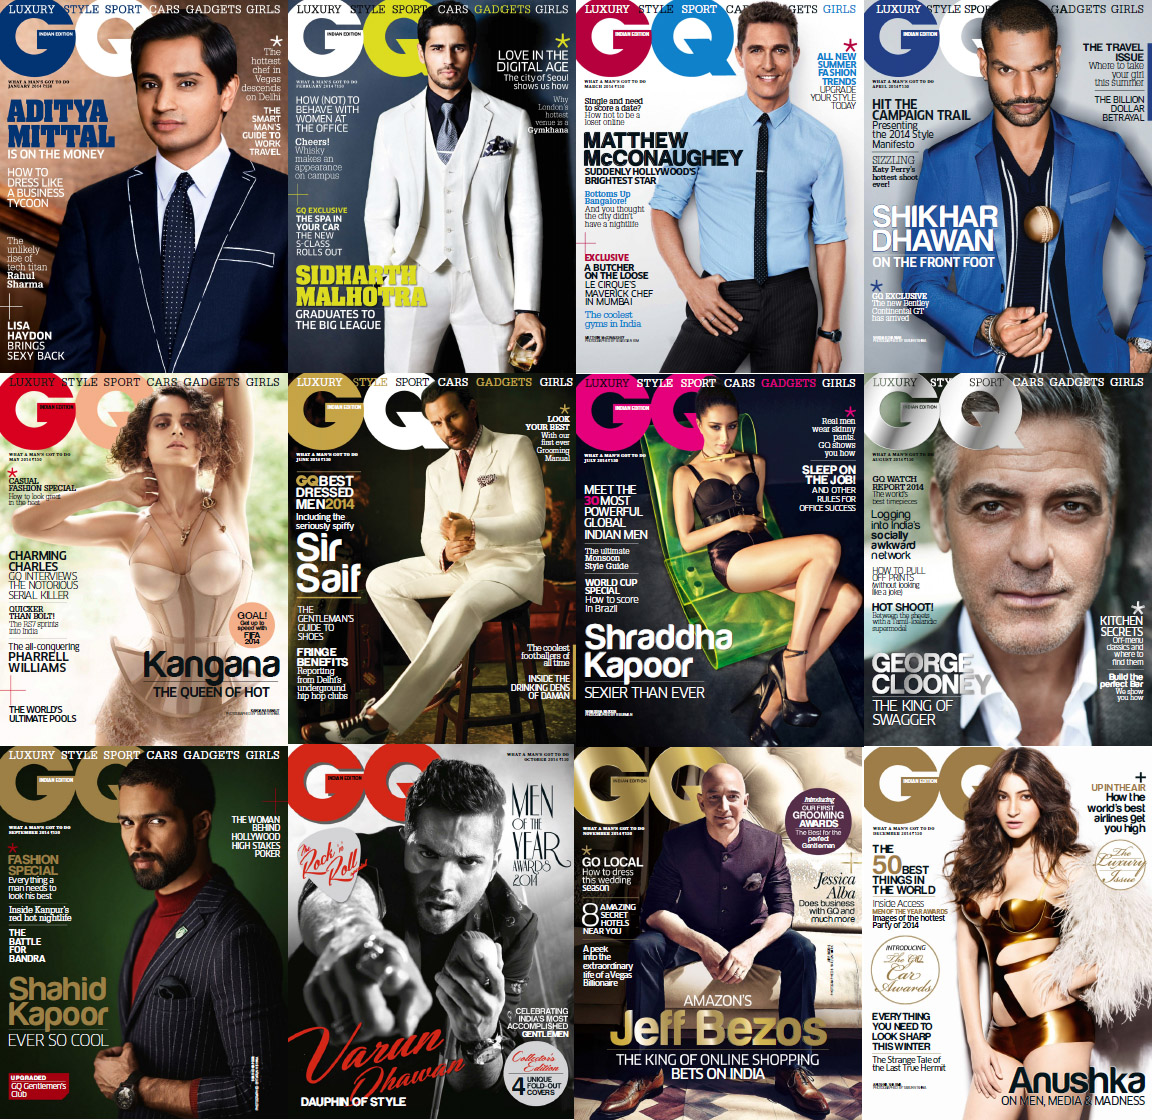 GQ India Magazine - 2014 Full Year Issues Collection free download